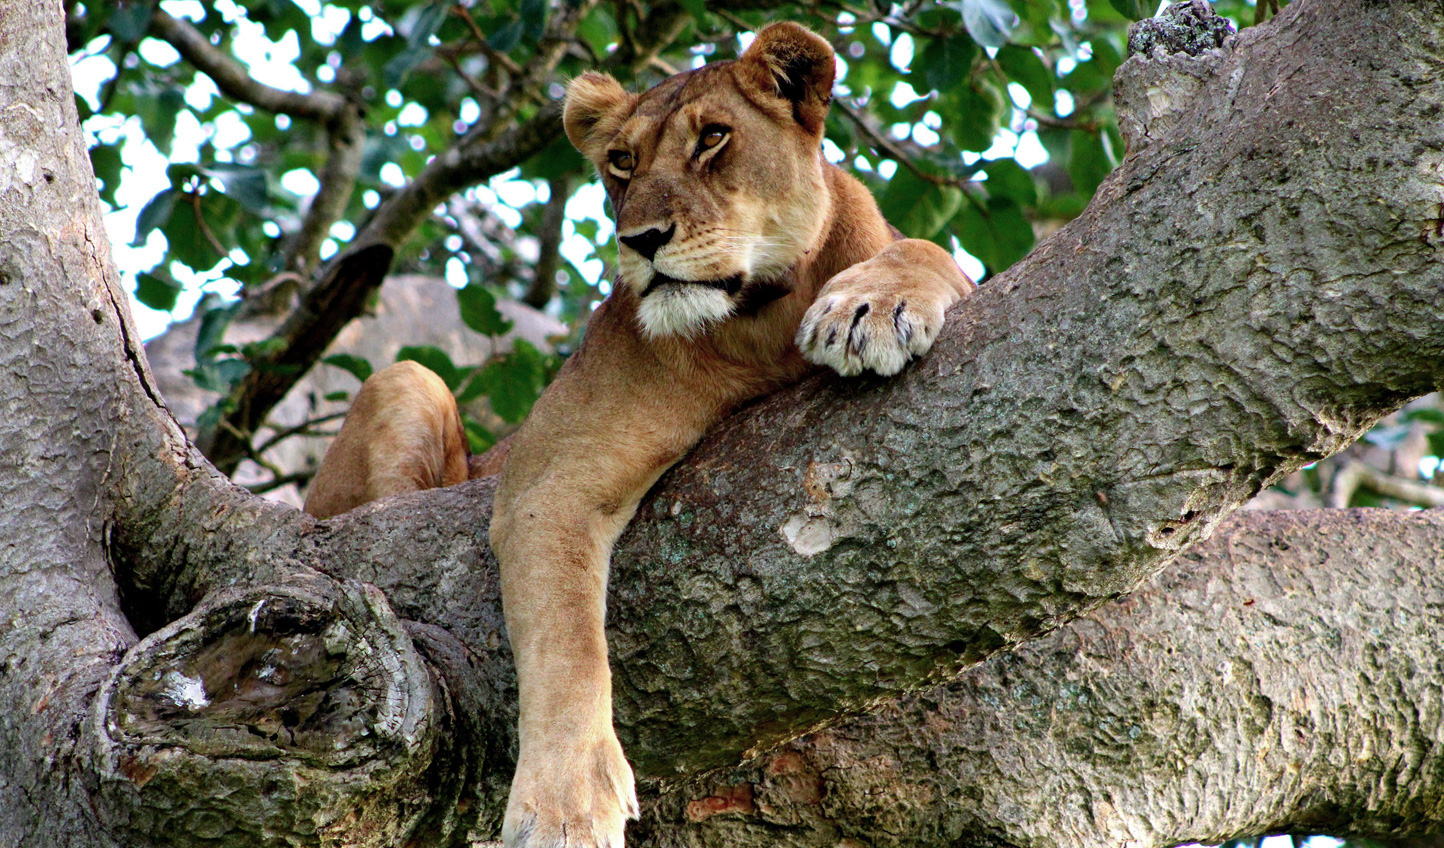 Head to Solio Lodge to see tree climbing lions